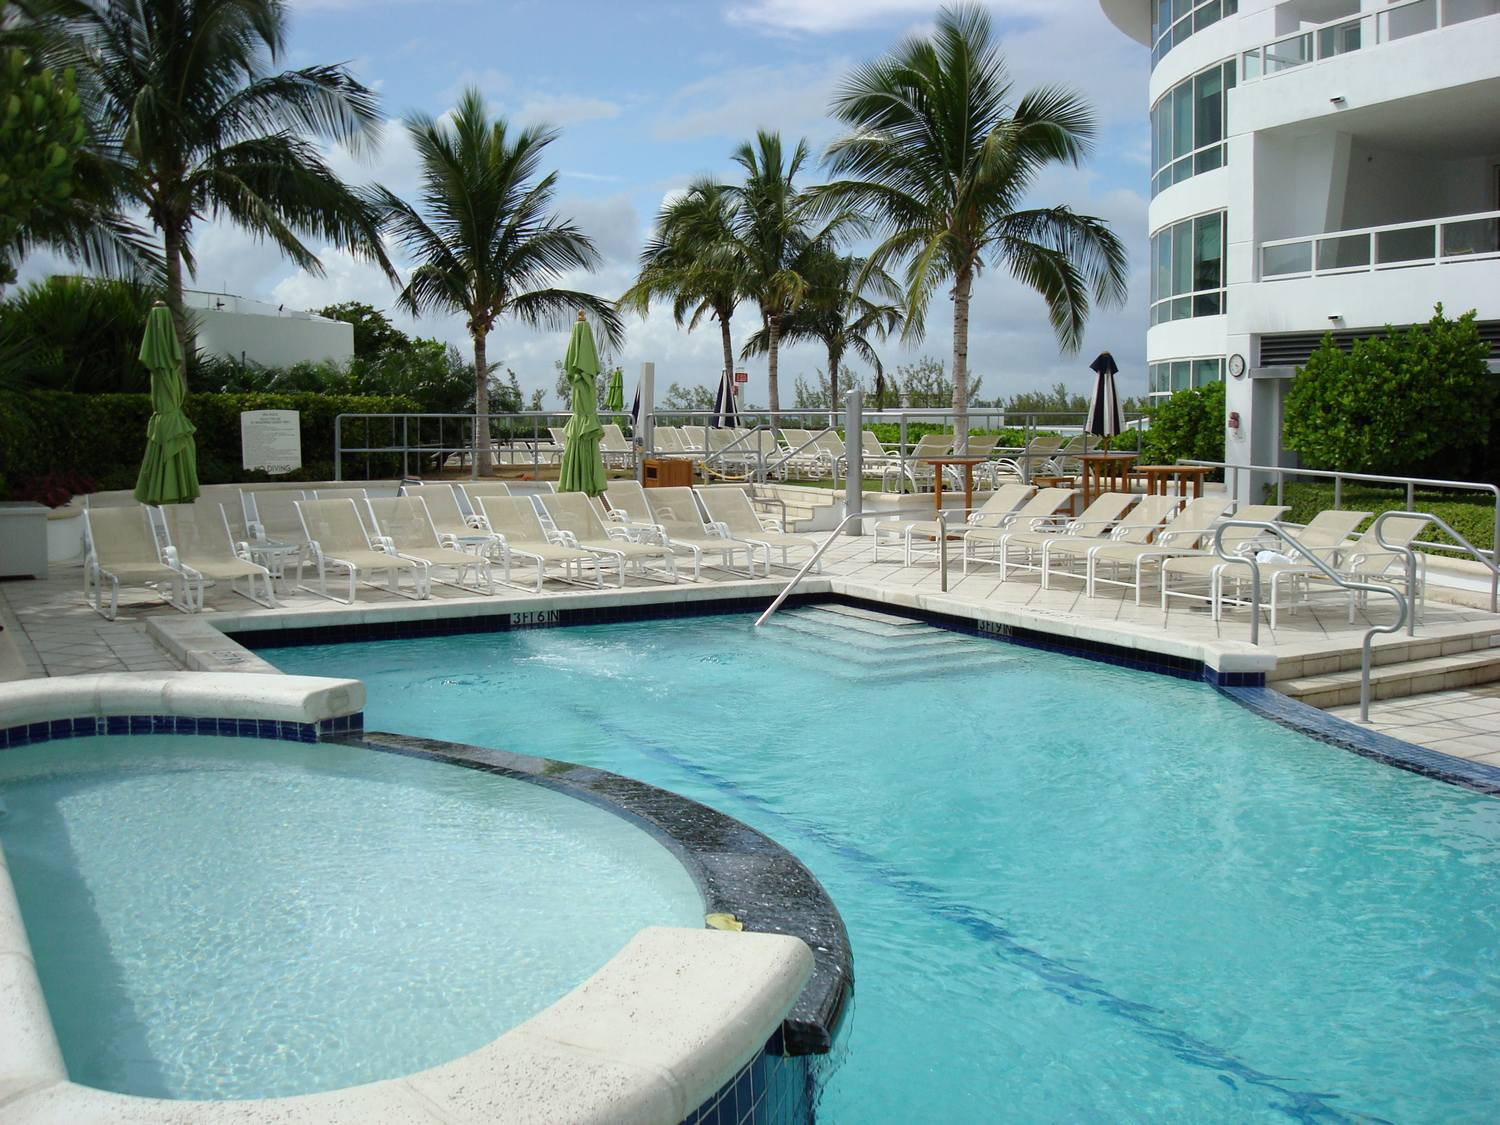 miami south beach sky pool